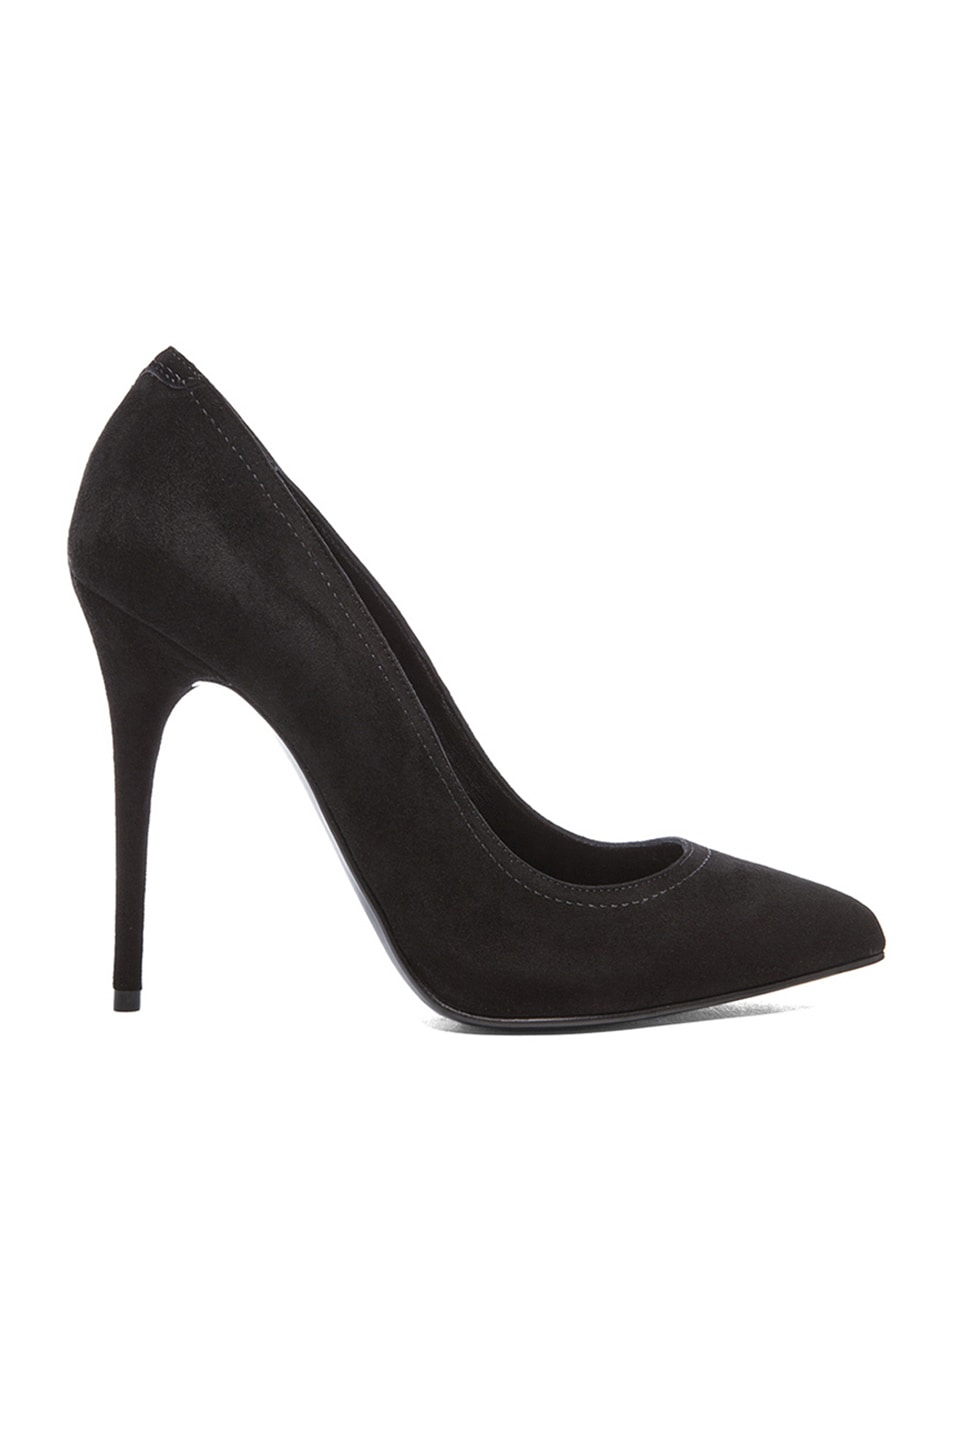 Image 1 of Alexander McQueen Pointy Suede Pumps in Black